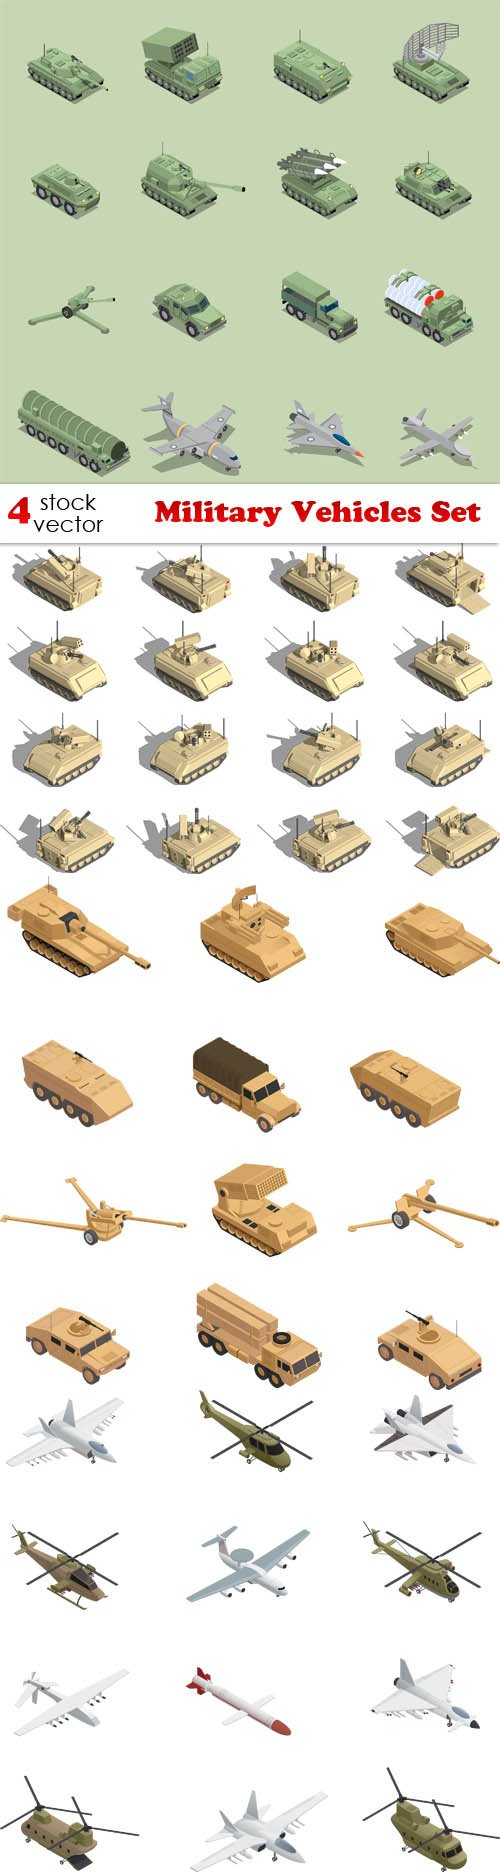 Vectors - Military Vehicles Set